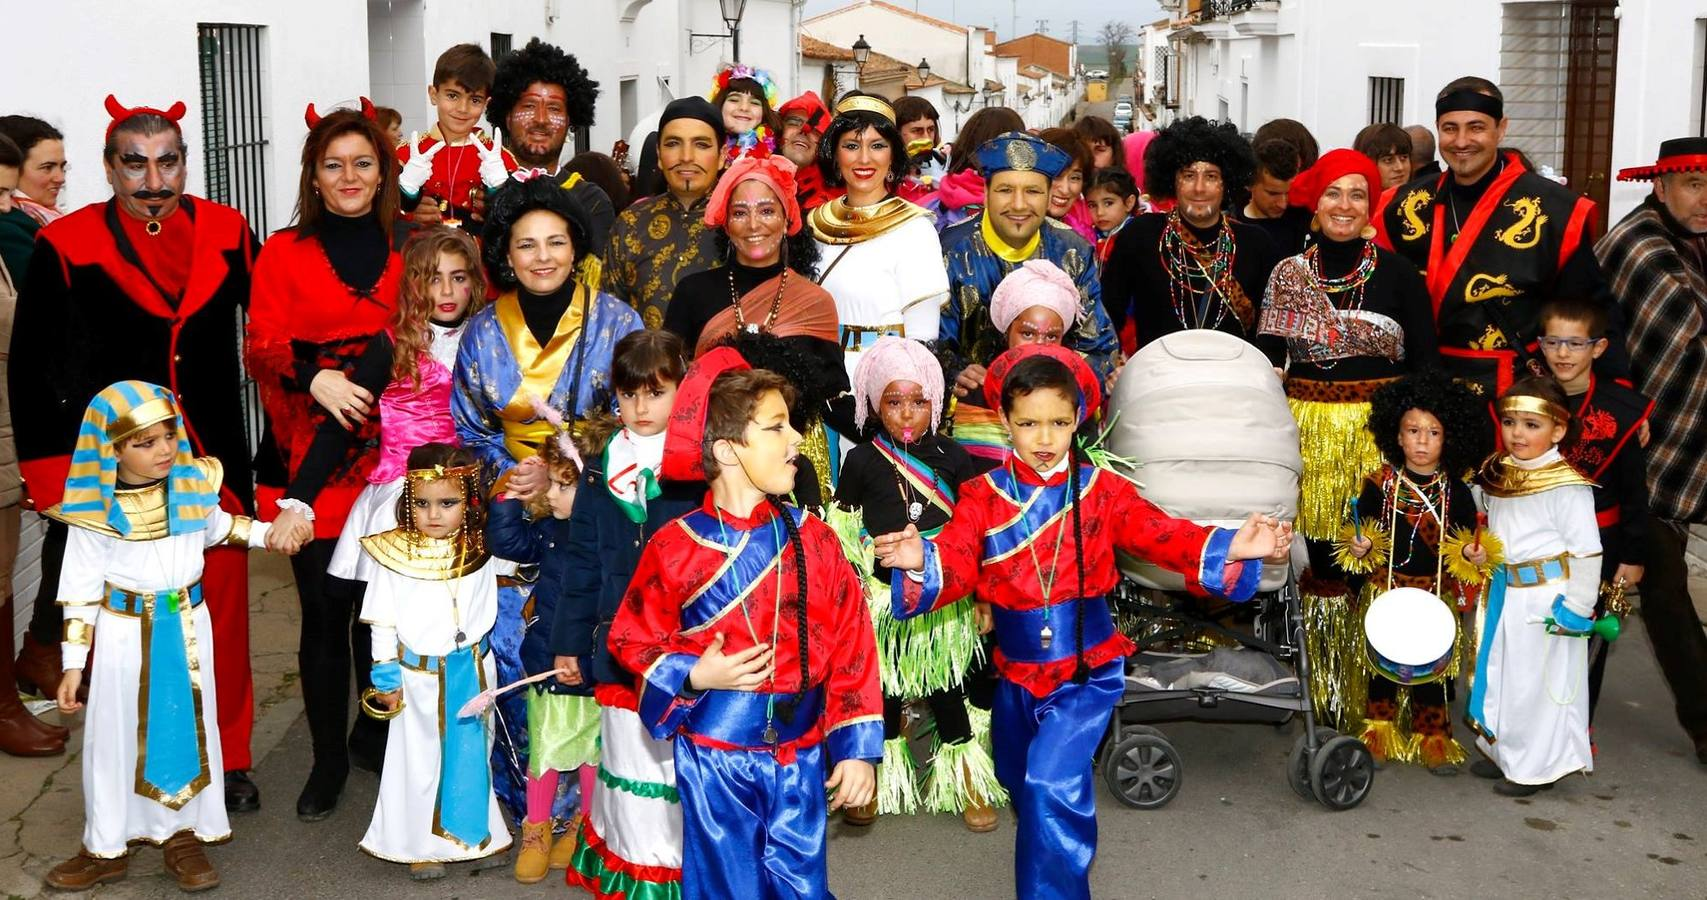 El color del Carnaval